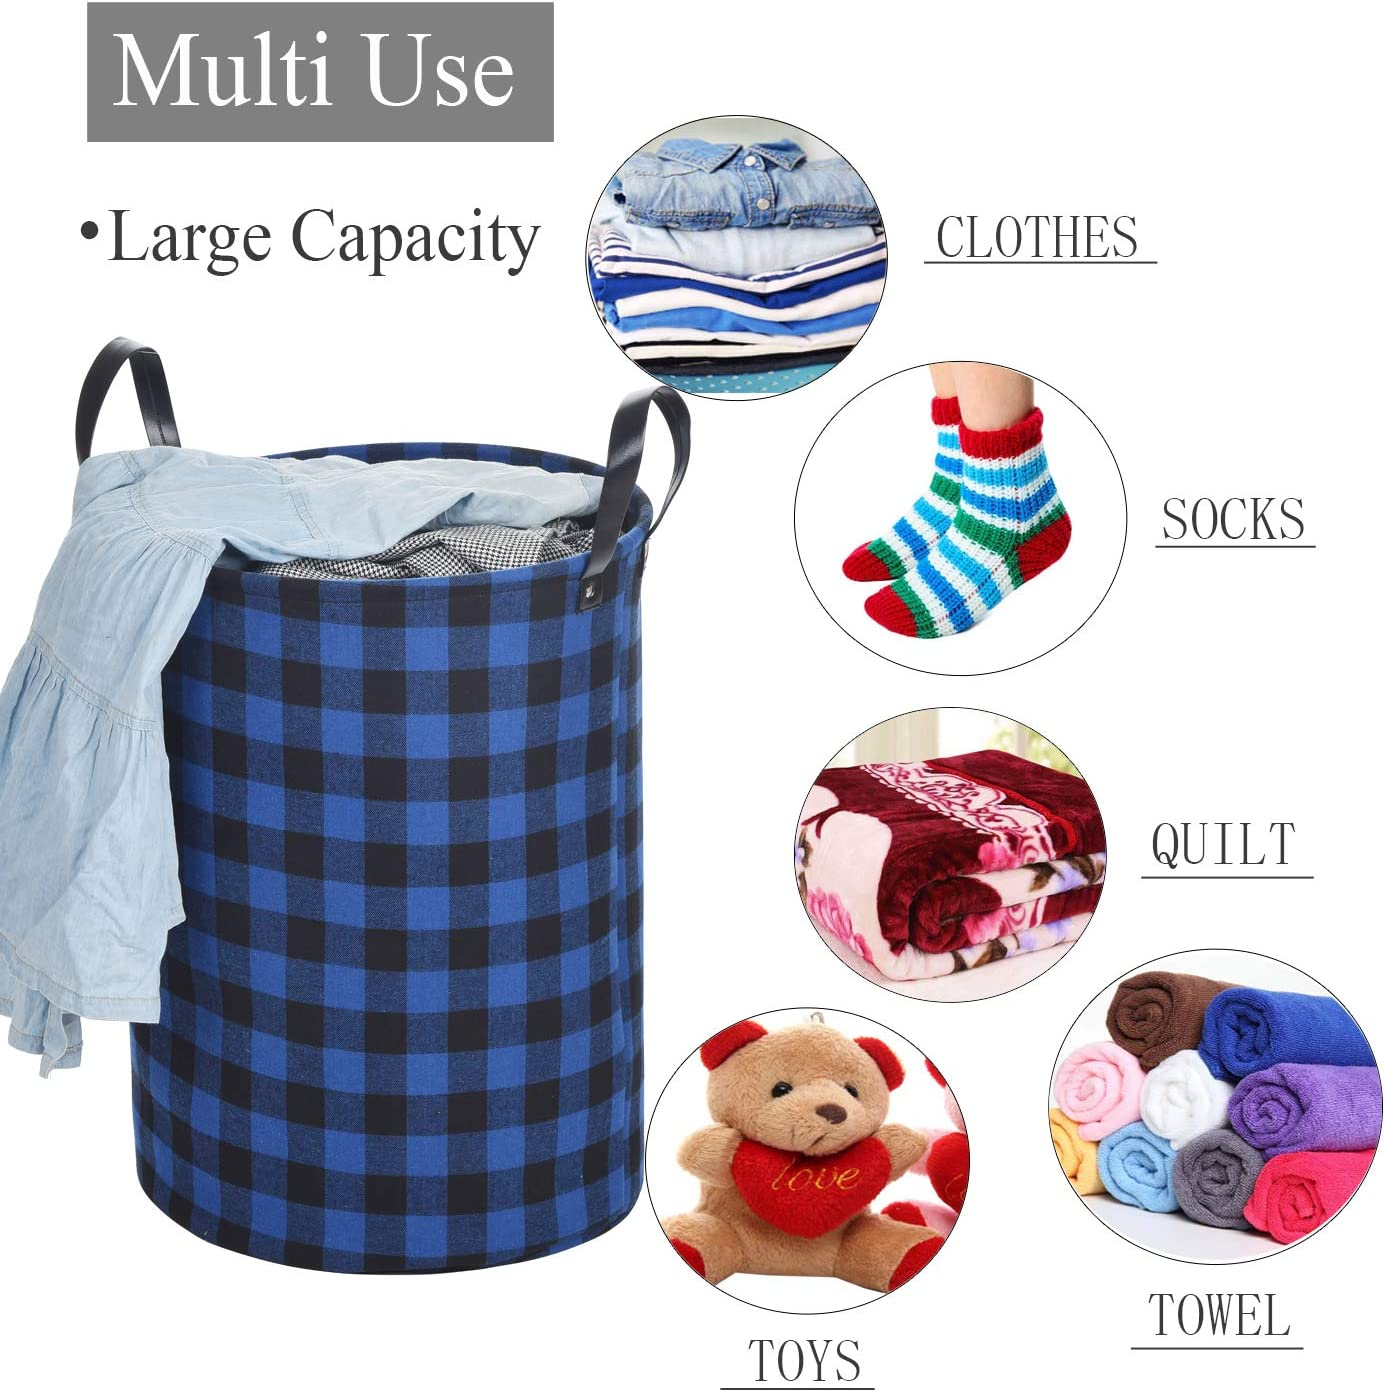 22/'Tall Large Round Laundry Hamper for Clothes Storage Haundry Collapsible Laundry Basket with Durable Leather Handles